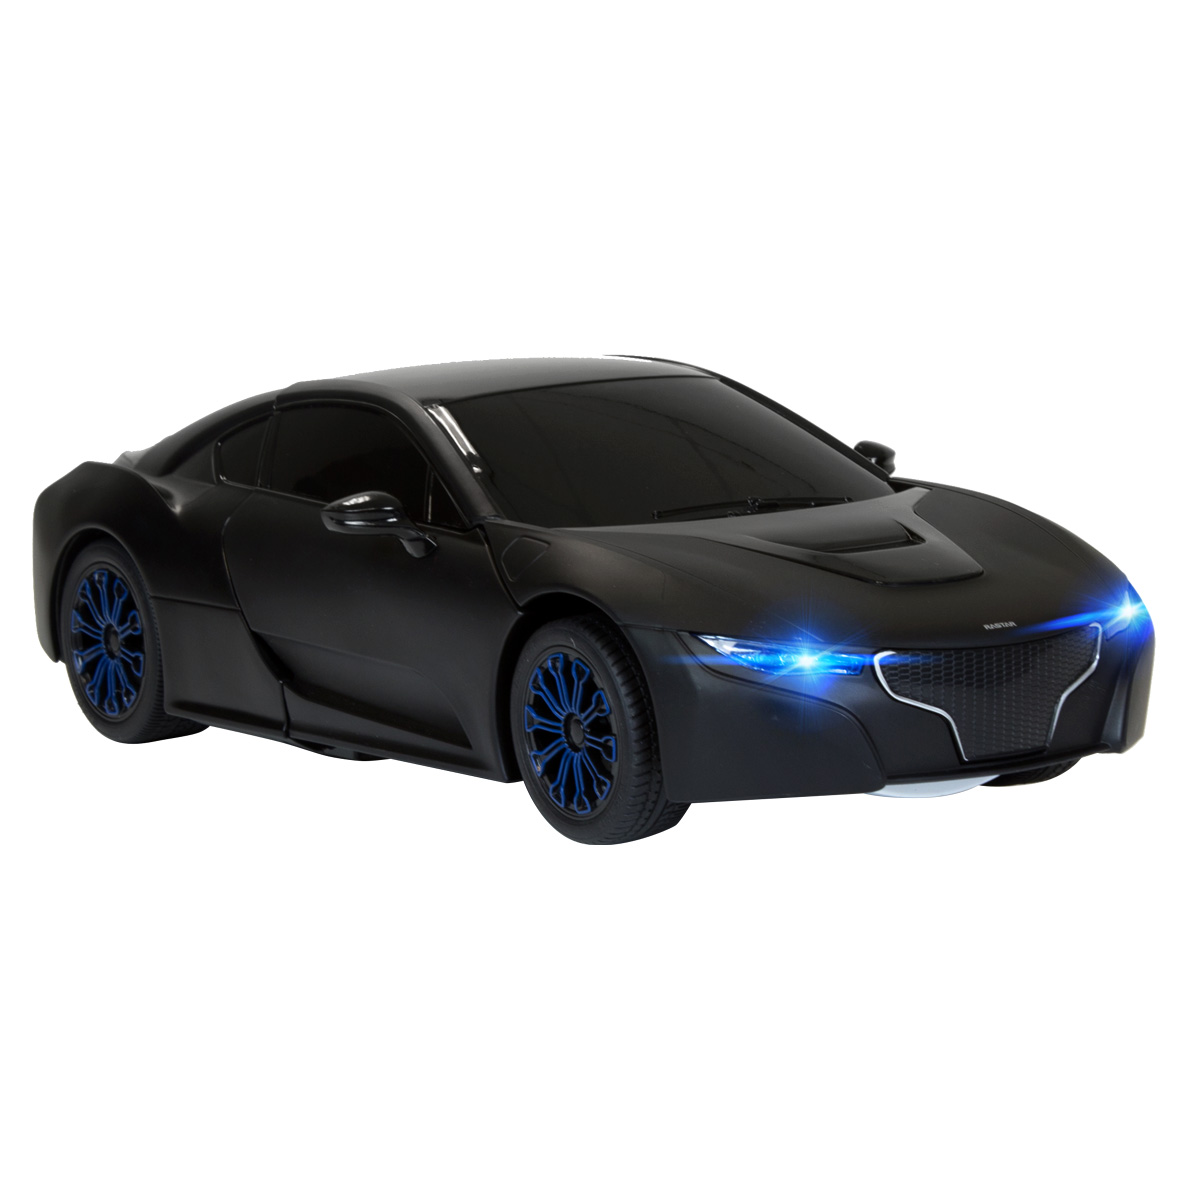 fastest battery powered rc car with Lamborghini 20aventador 20electric 20toy 20car on Battery Powered Sports Car besides Showthread as well Nerf St ede Ecs 60 Vulcan Ebf 25 likewise Kids Electric Cars Sa Battery Operated Ride On Electric further Flyback Diode Rc Snubber.